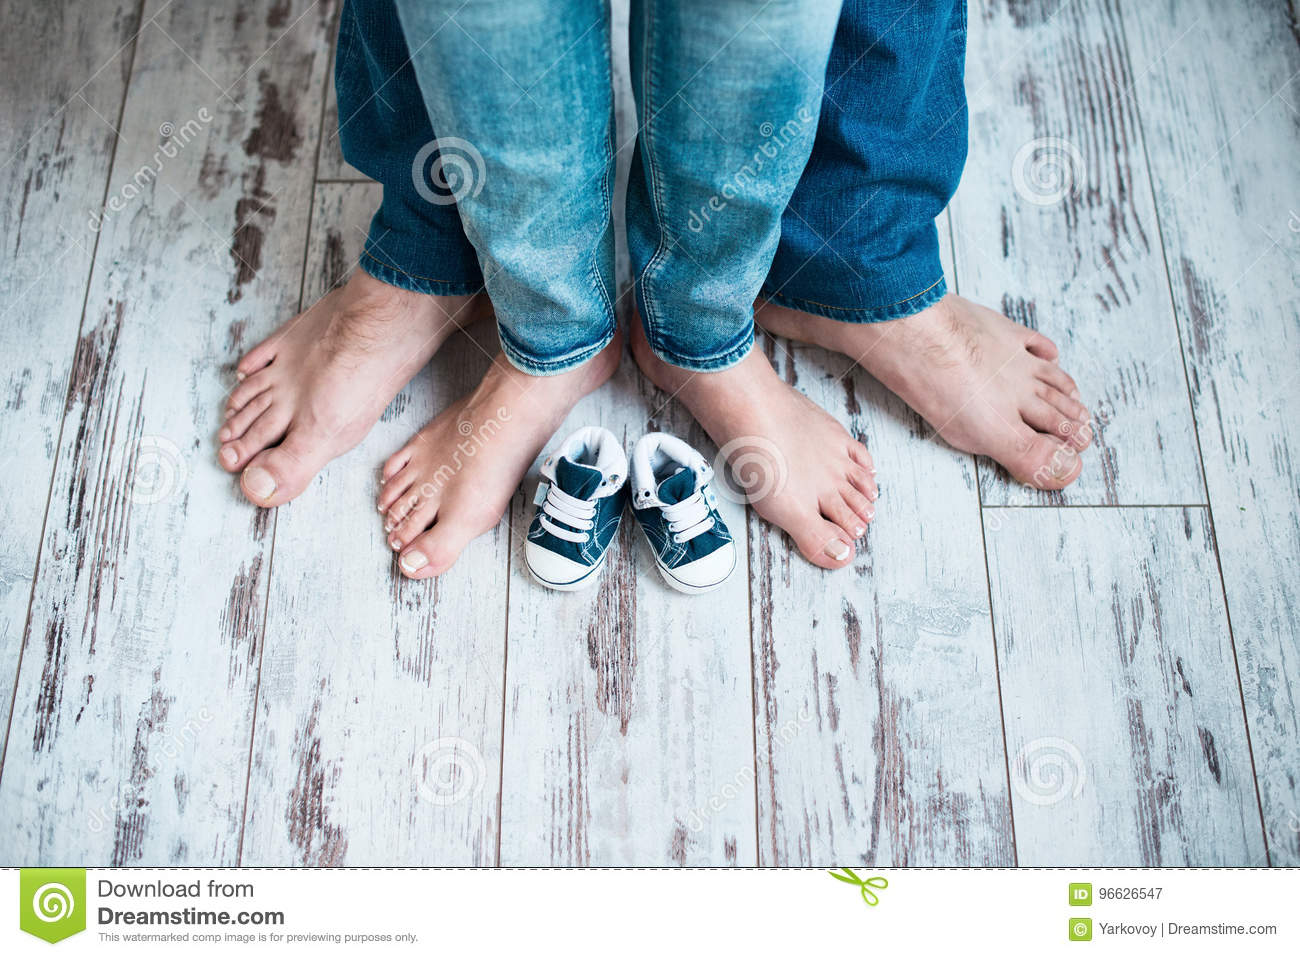 c6a8ca845260 Legs Of Parents With Children`s Sneakers. Waiting For The Baby ...